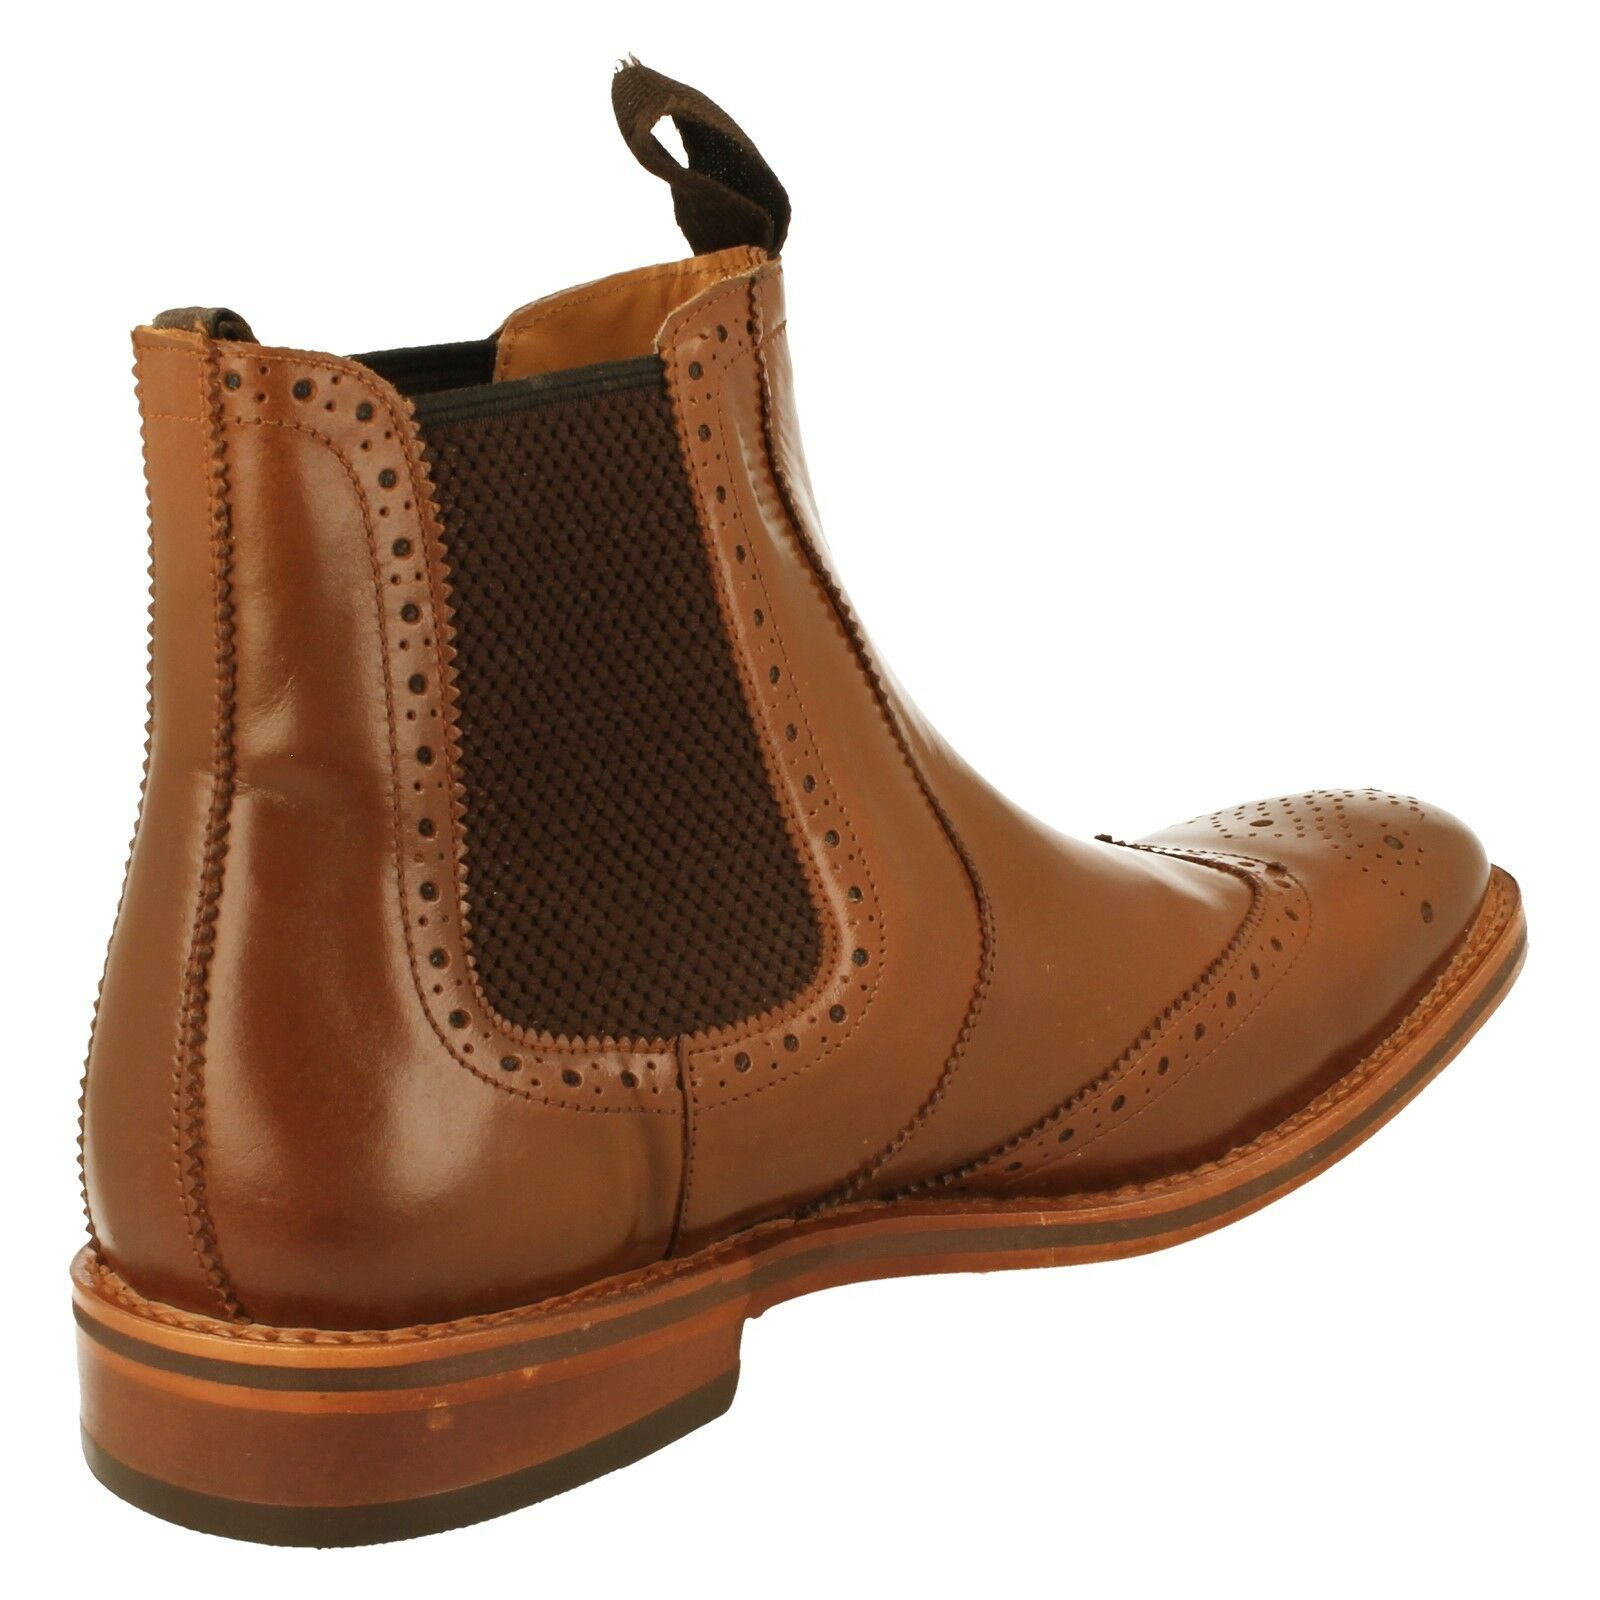 Men's Catesby Leather Ankle Boots Boots Boots - MCATESCW158 ee3f78